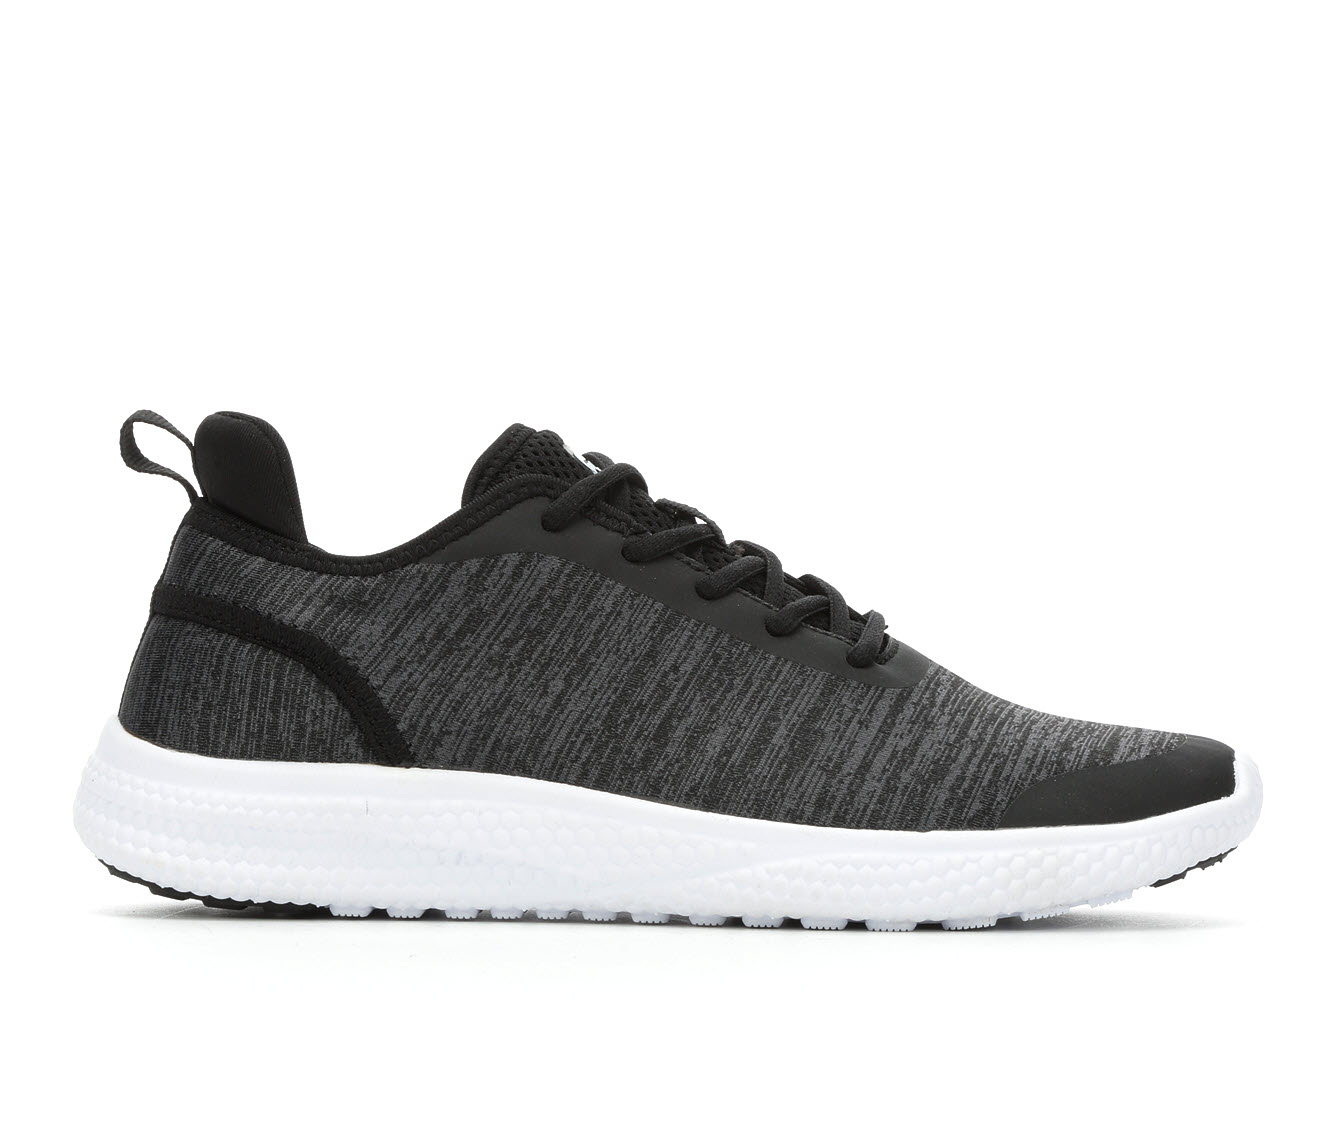 Fabletics Voyage Women's Athletic Shoe (Black)